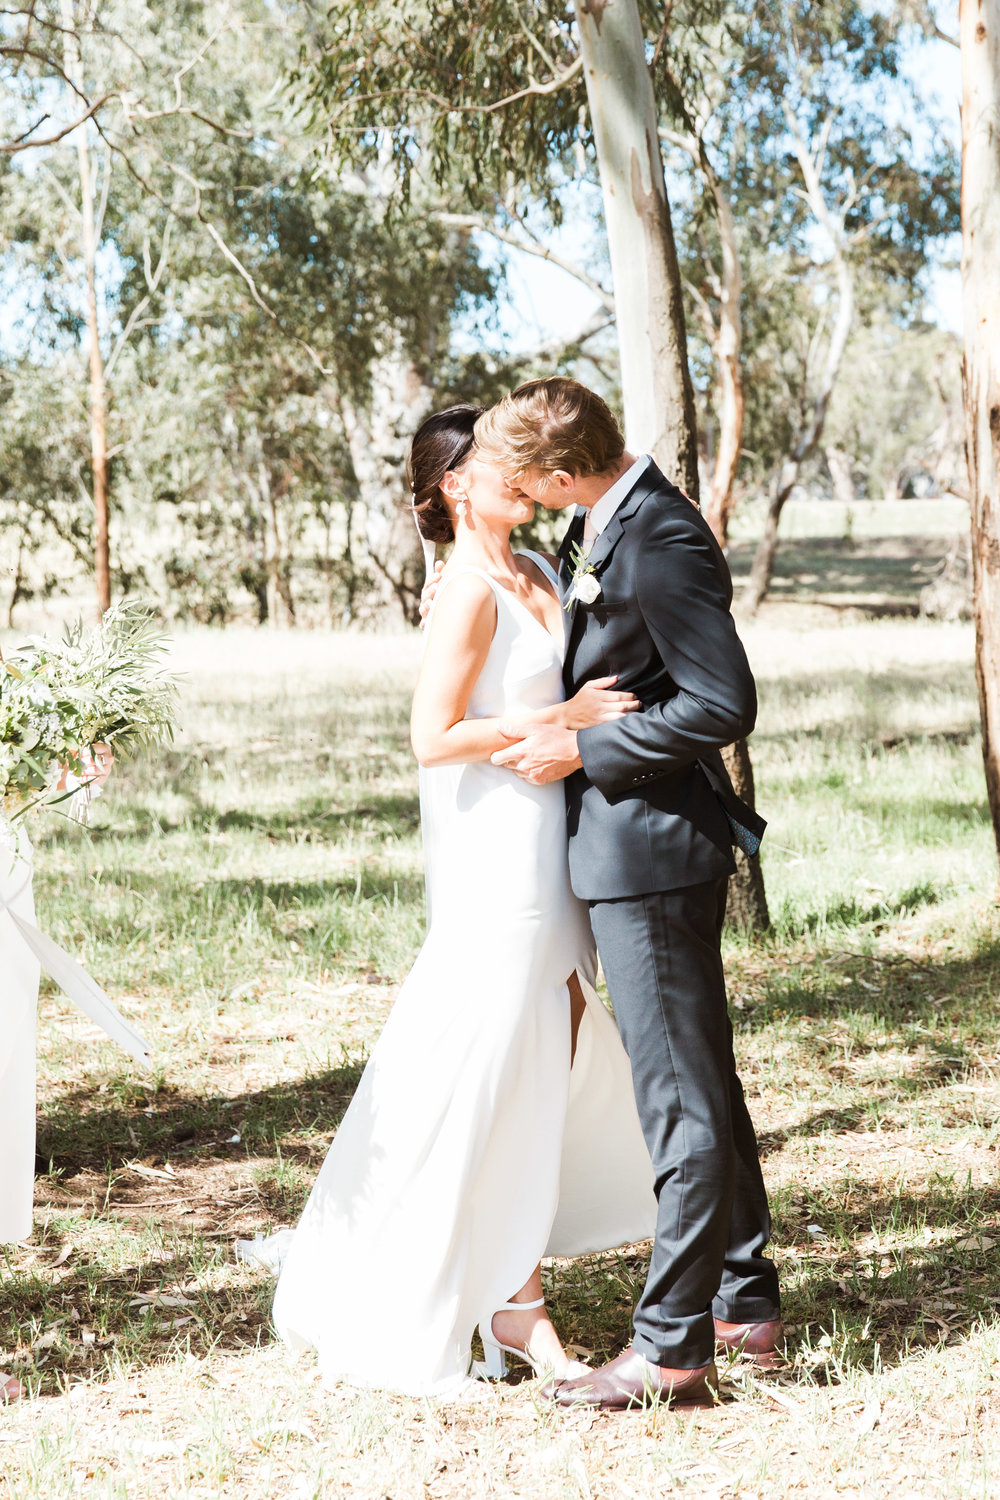 00030- Olive Tree Mediterranean Wedding in Mudgee NSW Australia Fine Art Film Wedding Lifestyle Photographer Sheri McMahon_.jpg